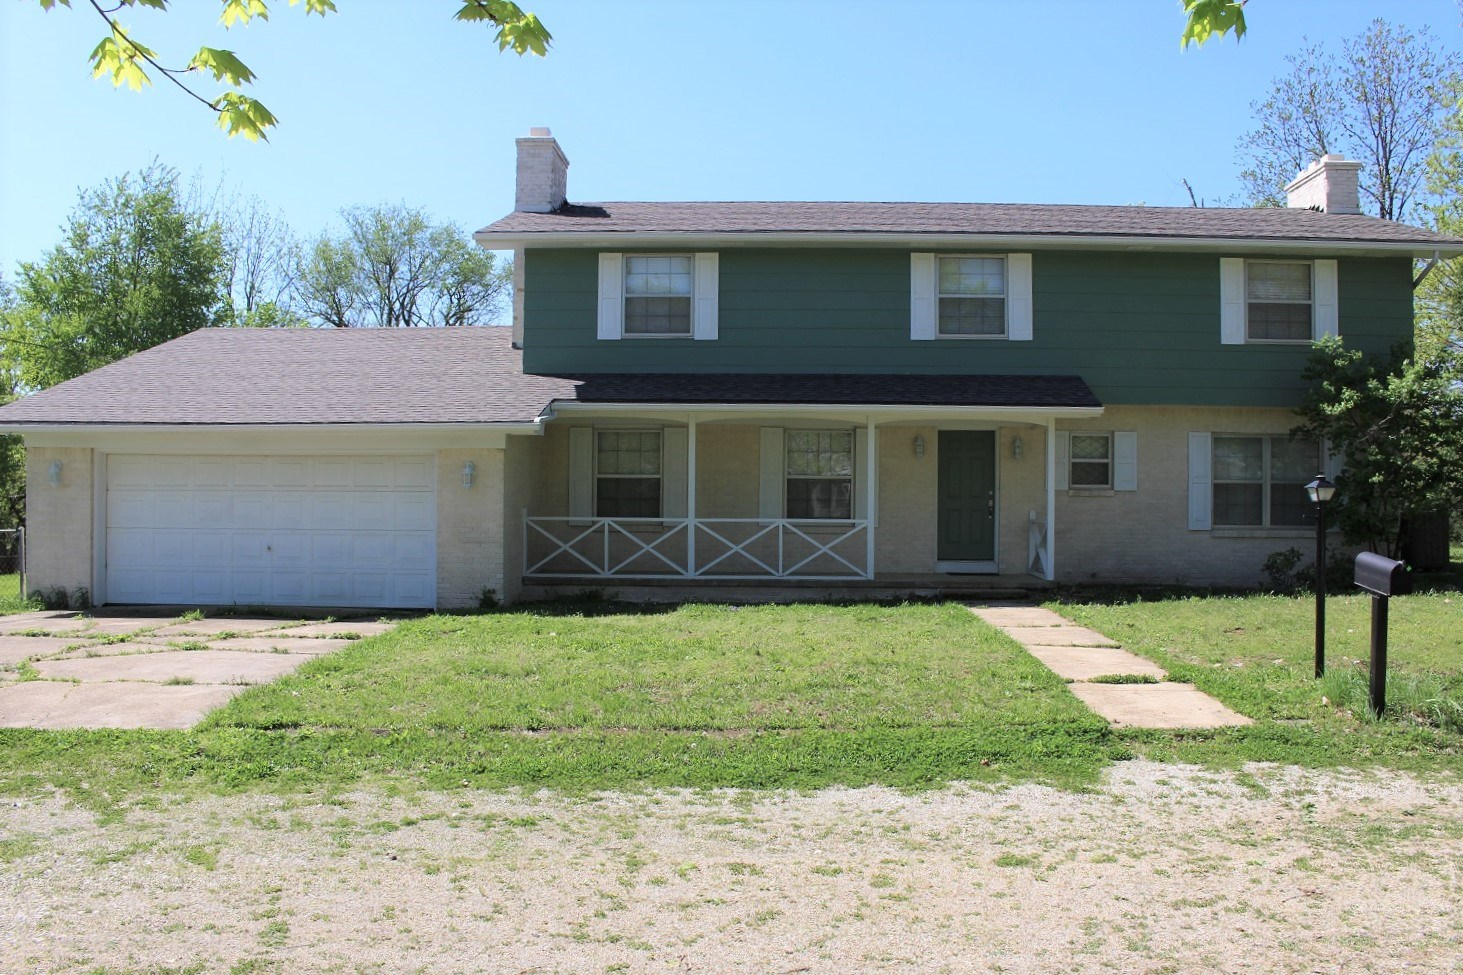 Home for Sale in Southern Missouri